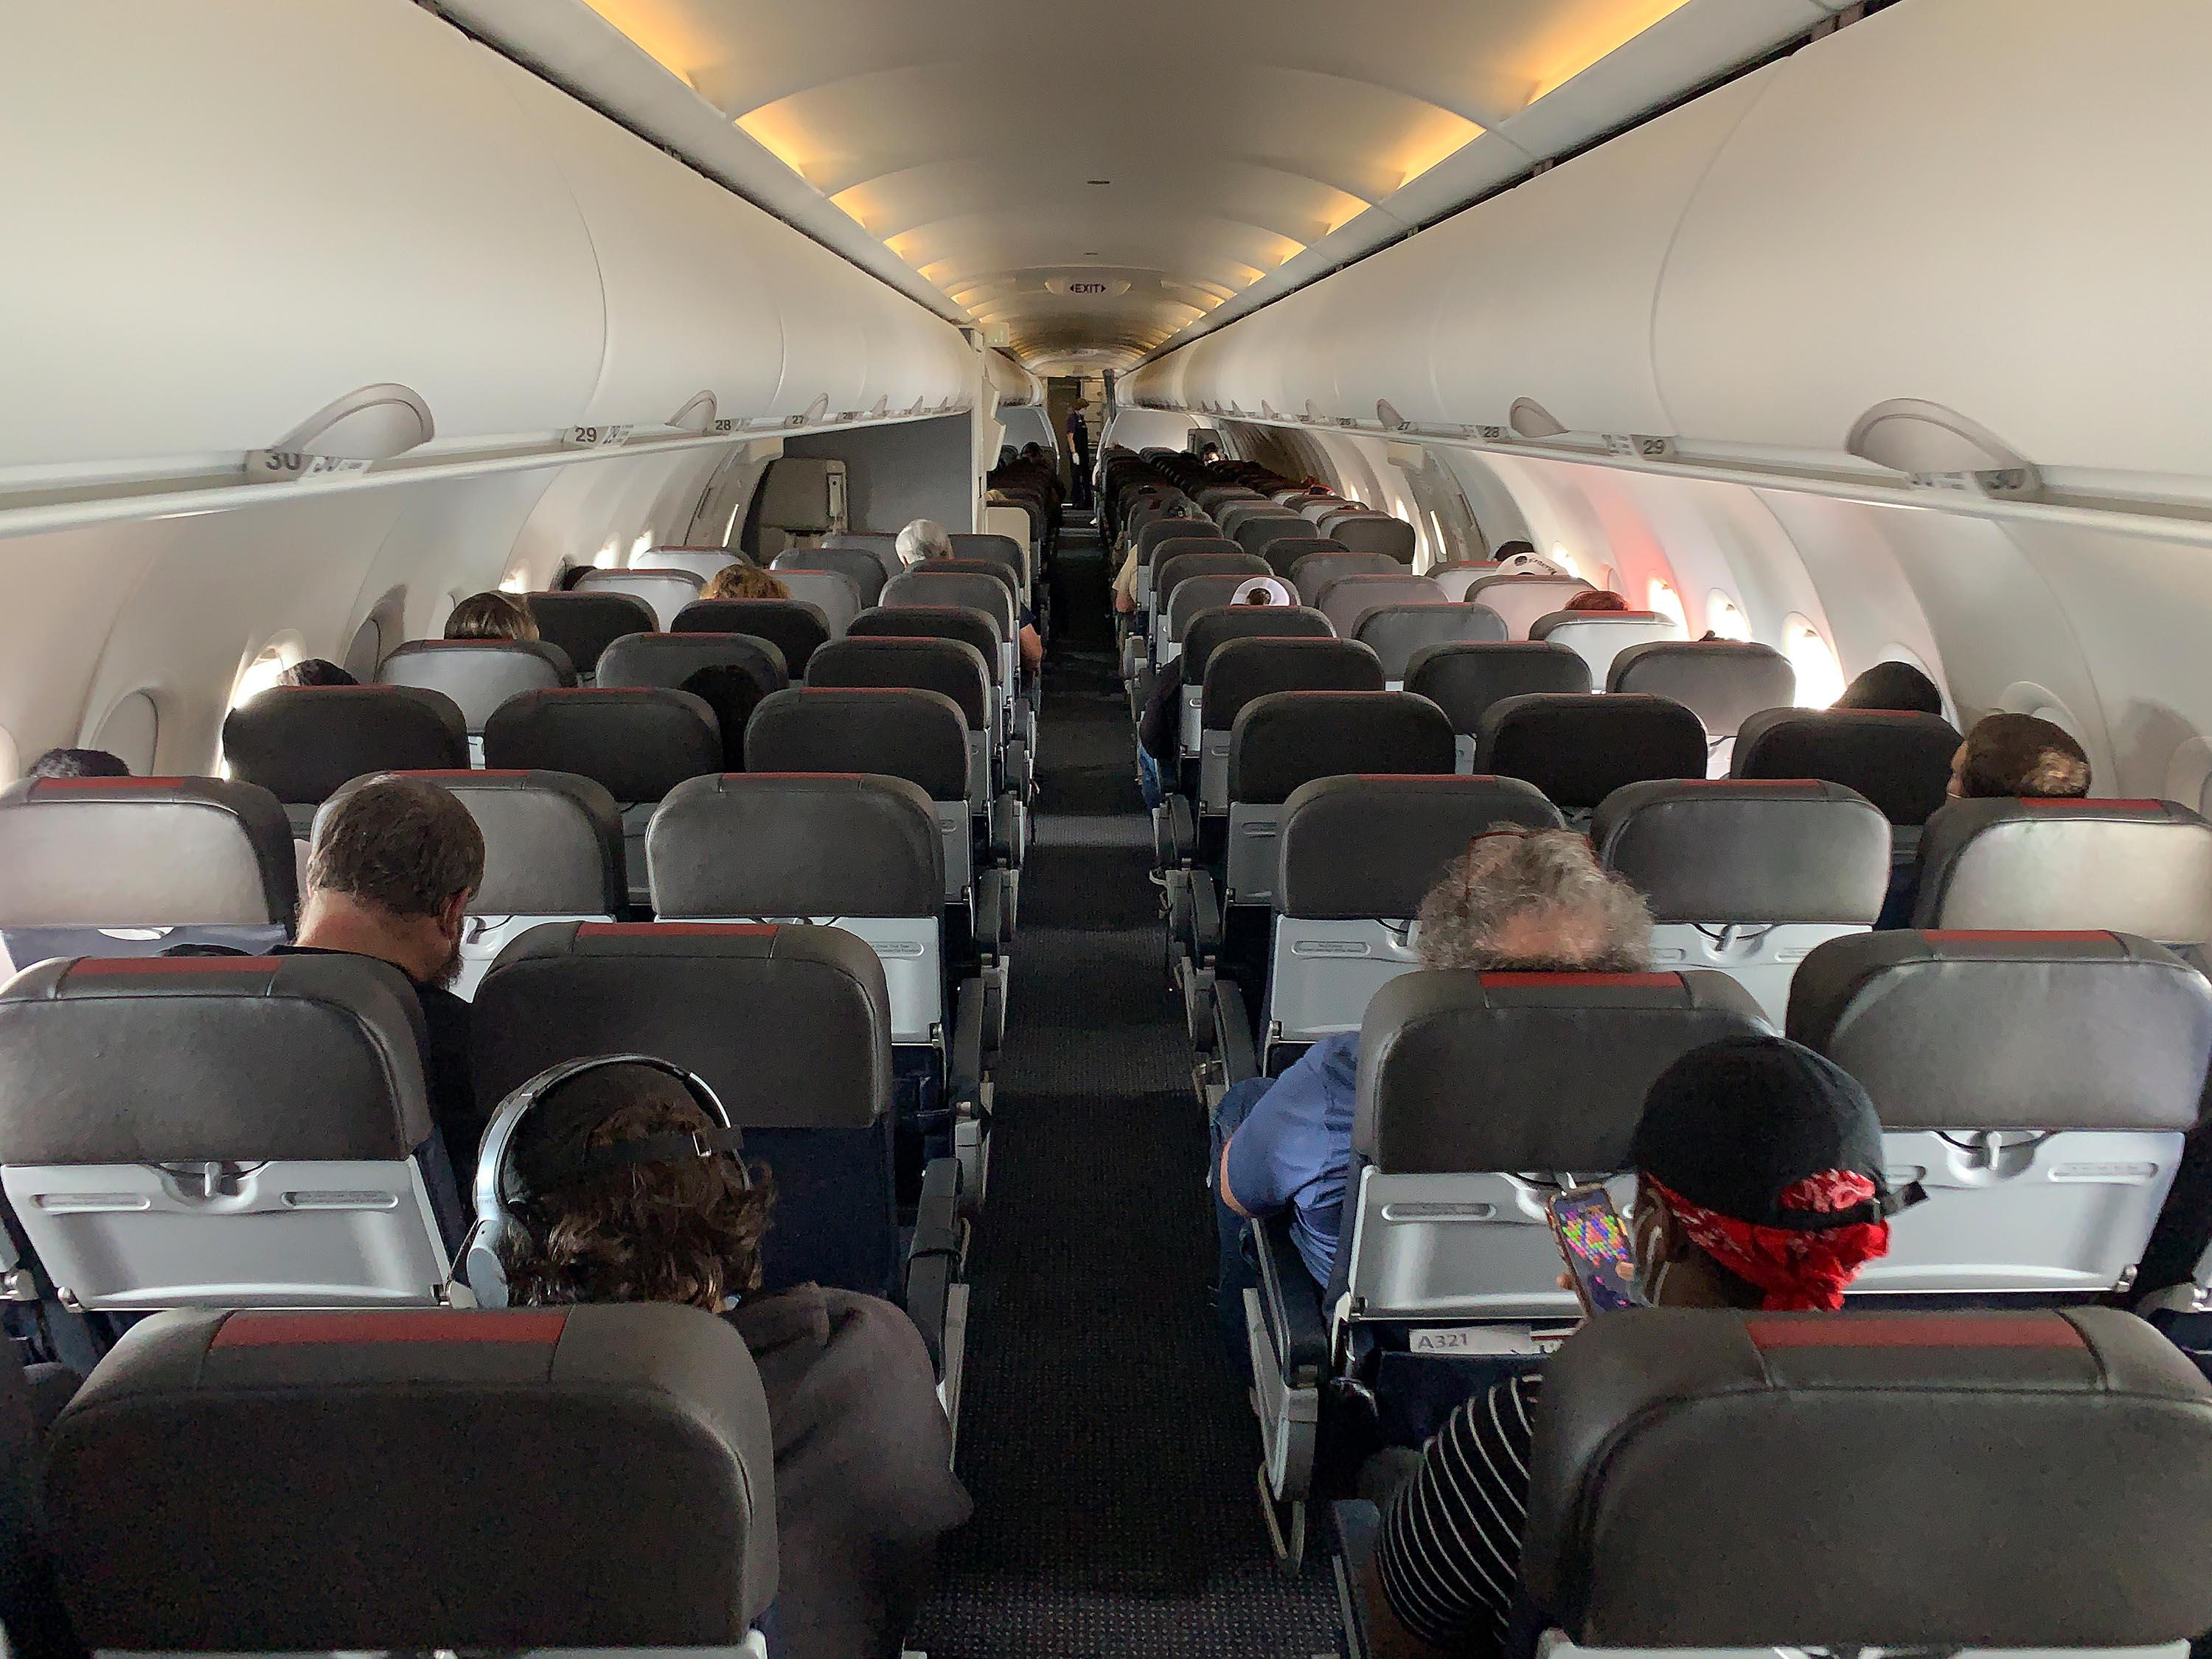 An American Airlines flight on May 15, 2020.